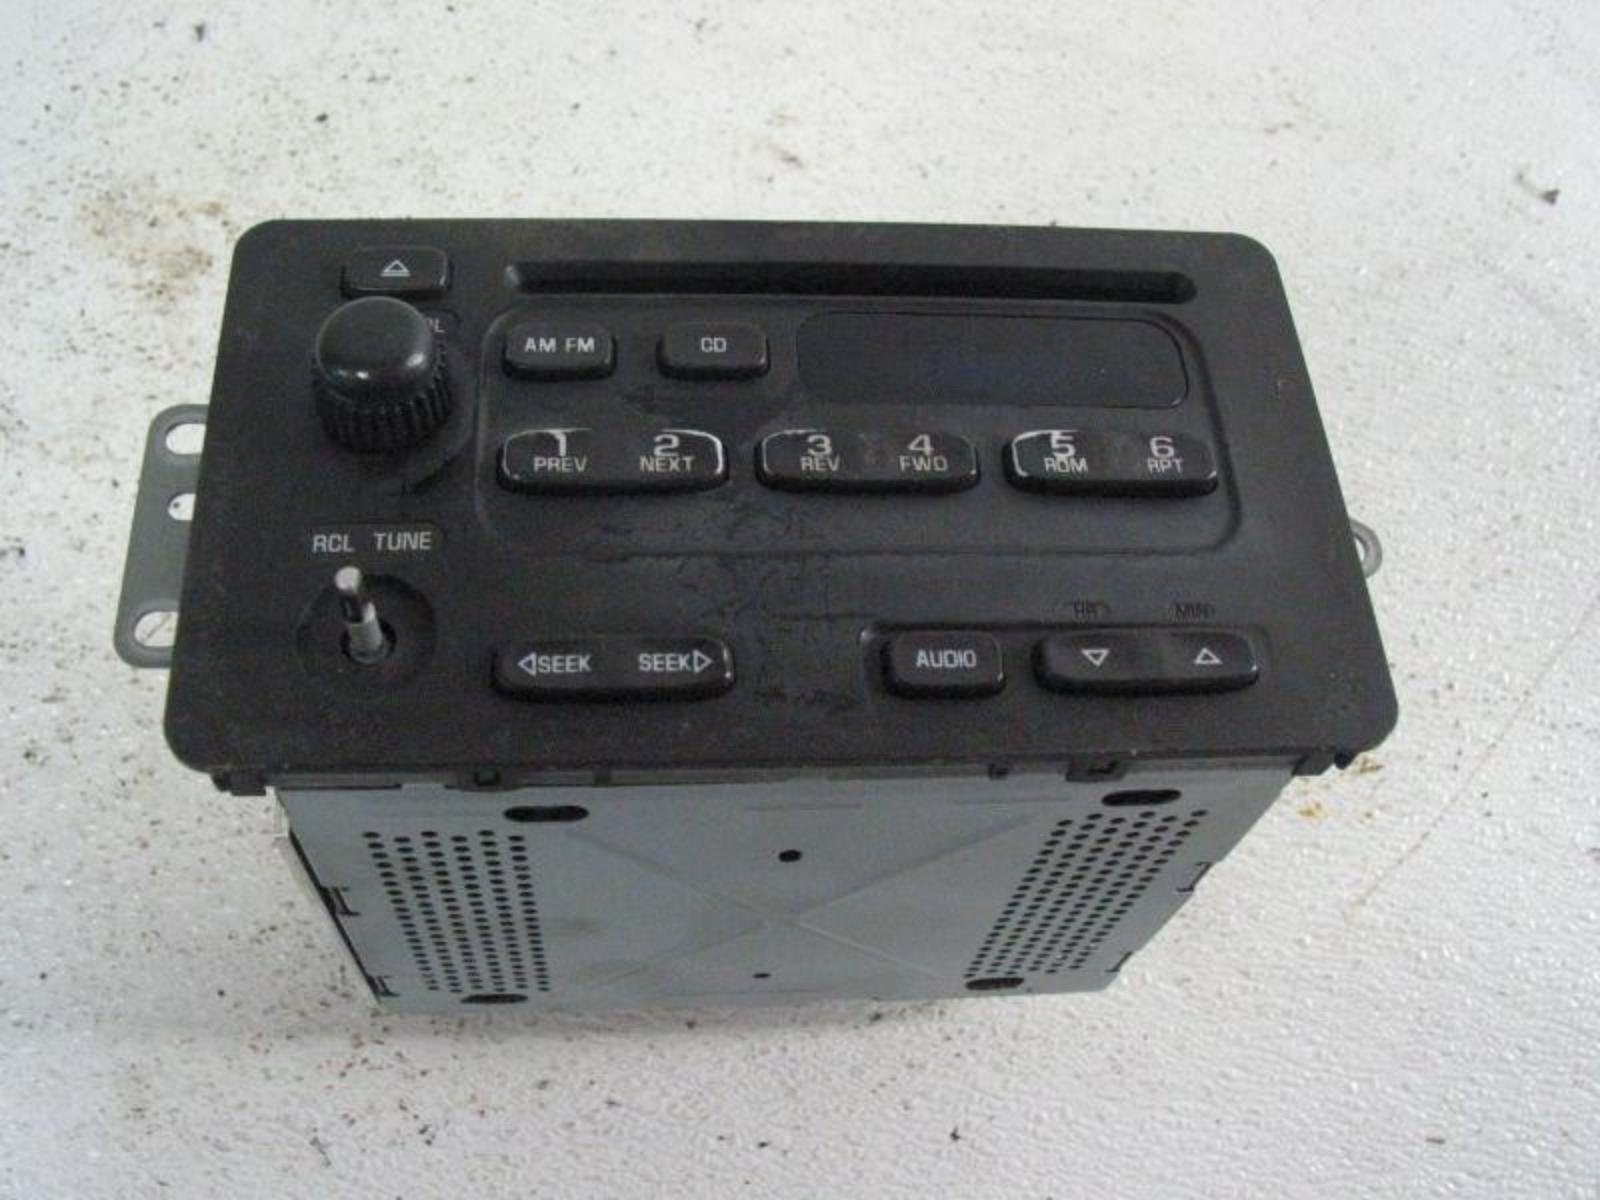 2003 Chevy Cavalier Radio Wiring Diagram